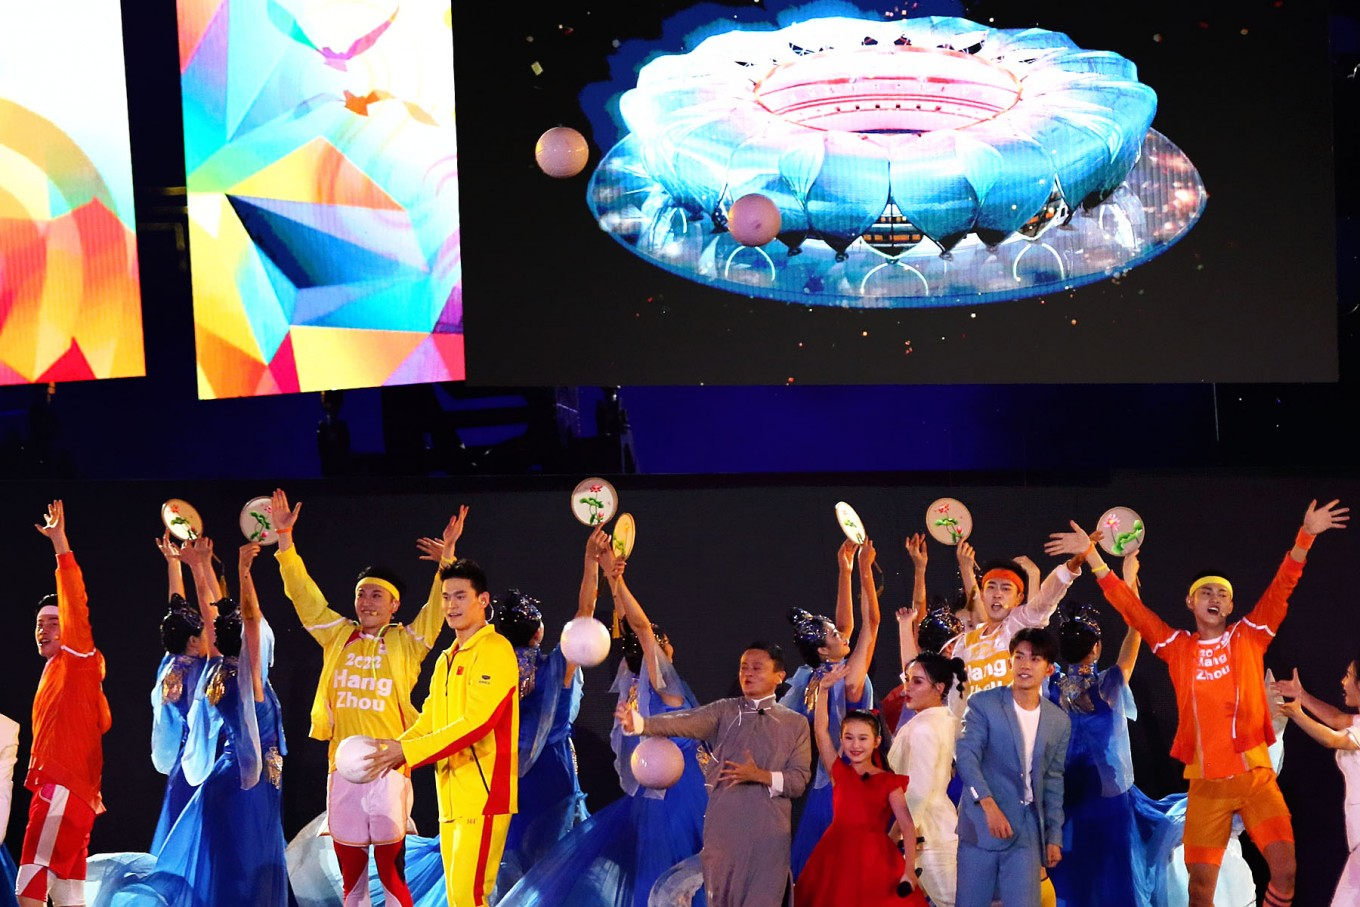 Chinese businessman Jack Ma (center) introduces his hometown Hangzhou as the next Games host city during the closing ceremony of the 2018 Asian Games at Bung Karno Stadium. JP/Seto Wardhana